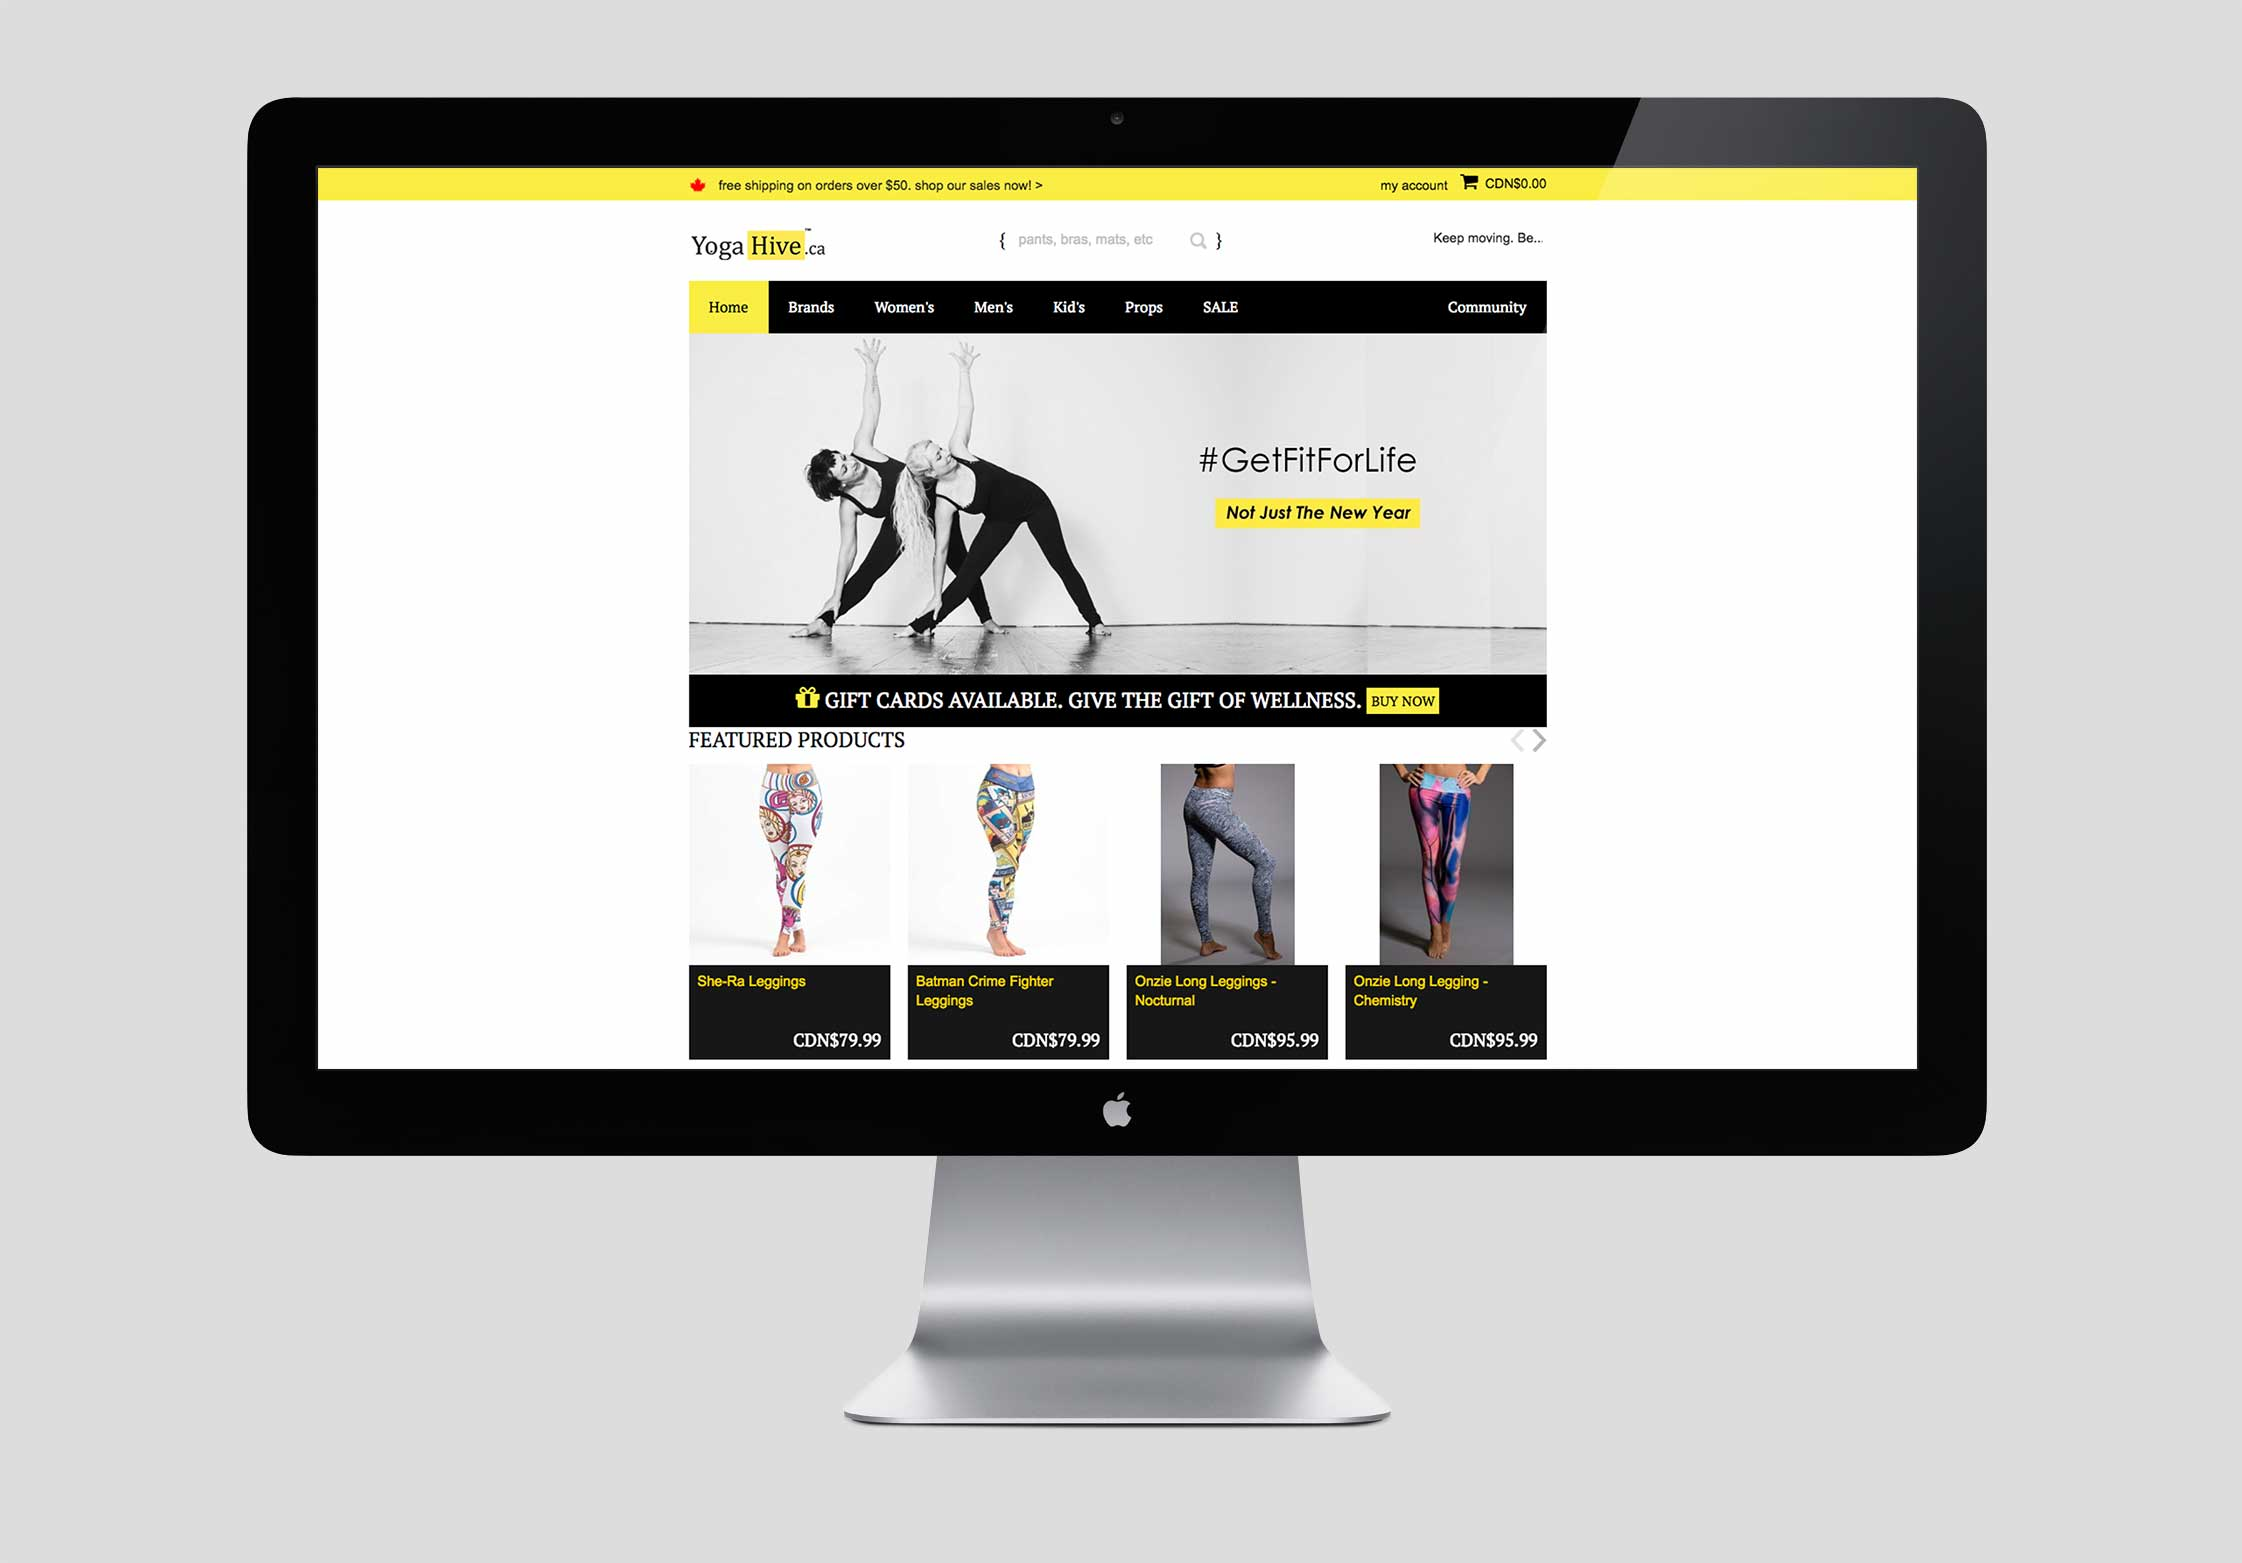 Yoga Hive website before re-design.